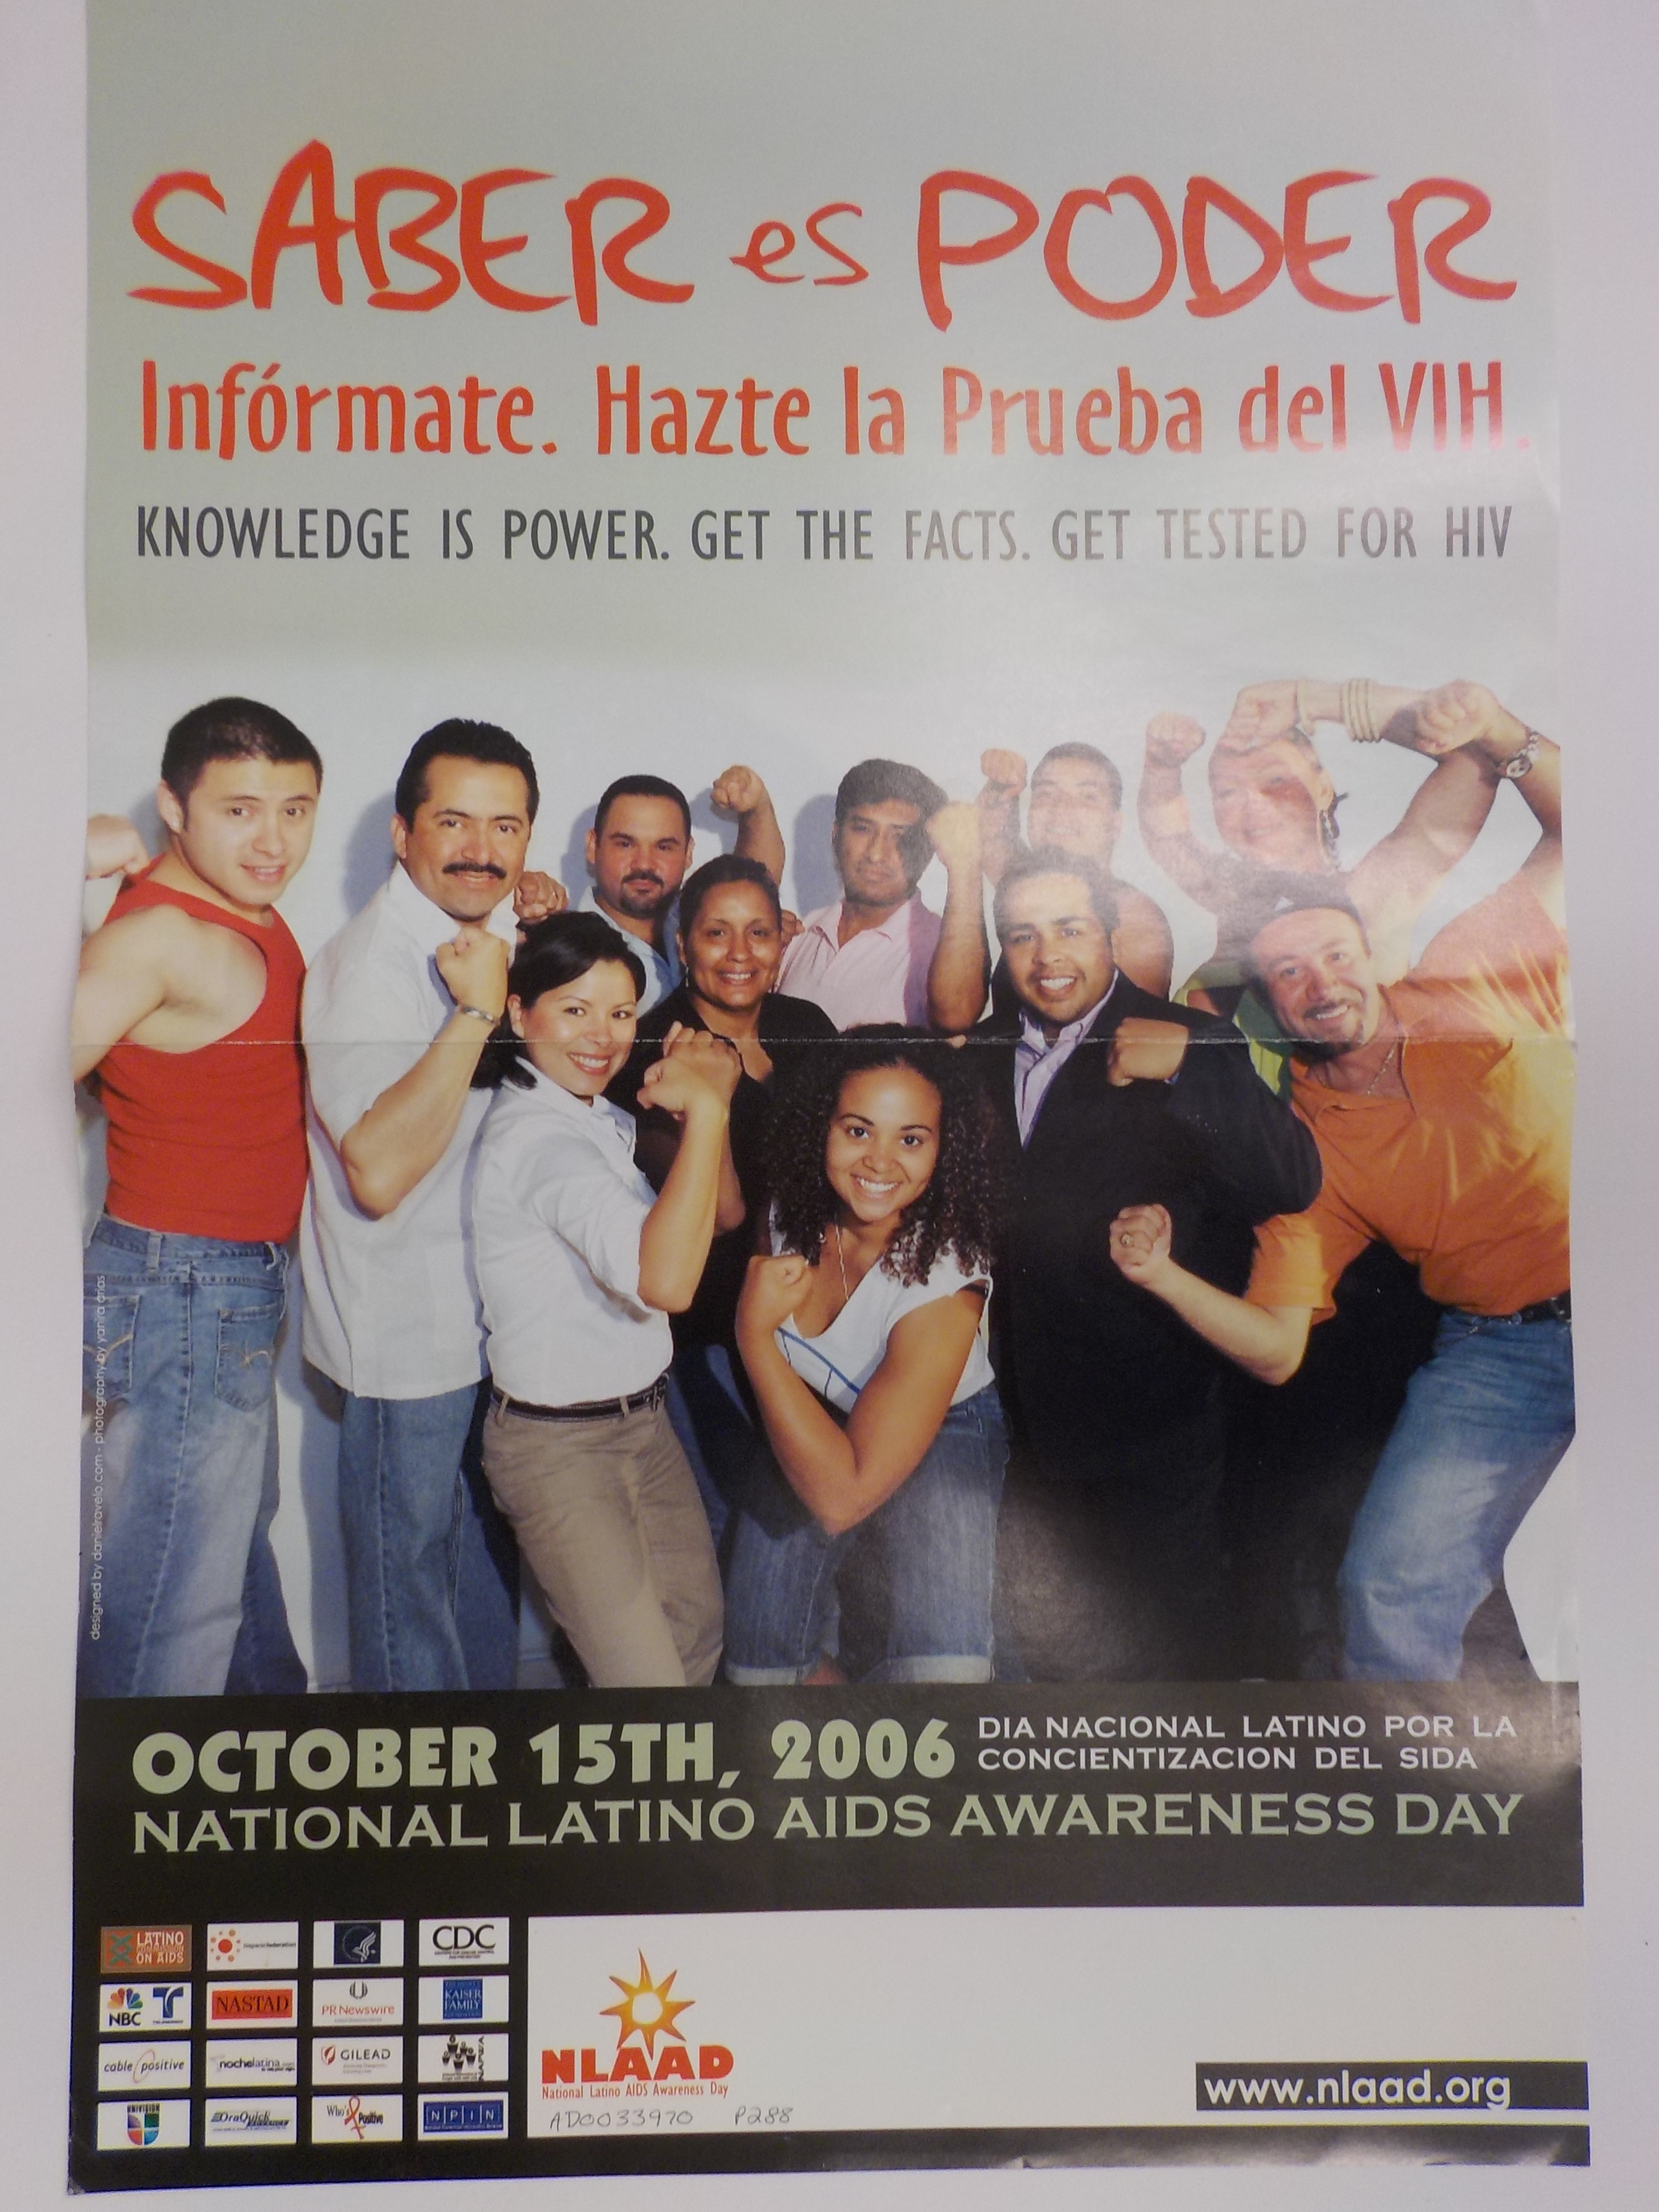 Saber es poder. Informate. Hazte la prueba dei VIH = Knowledge is power. Get the facts. Get tested for HIV.